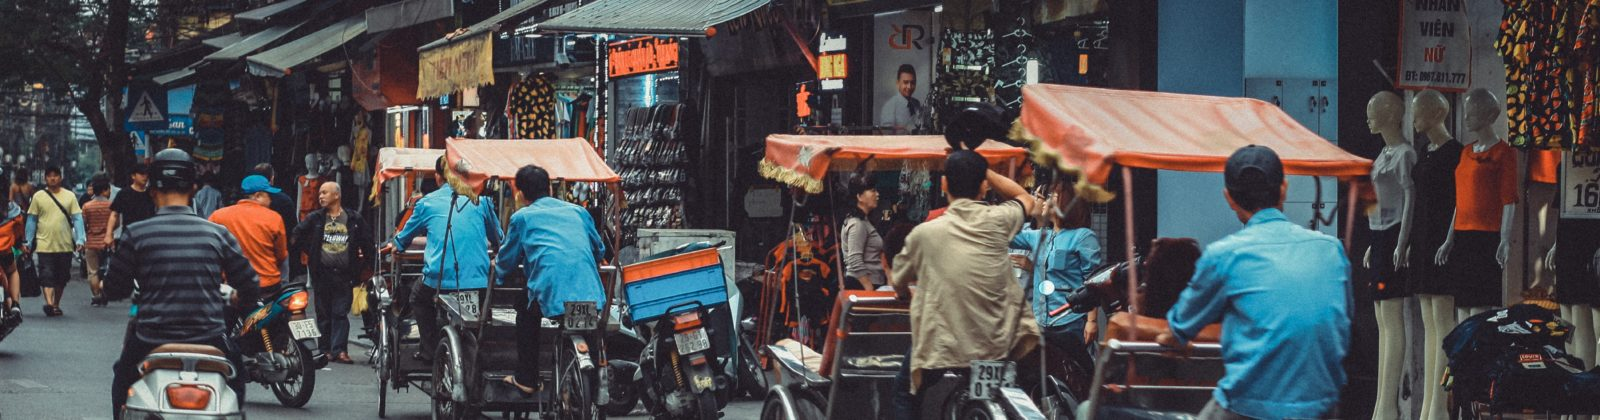 HVT calls for collective action for COVID-19 response for transport systems in low-income countries